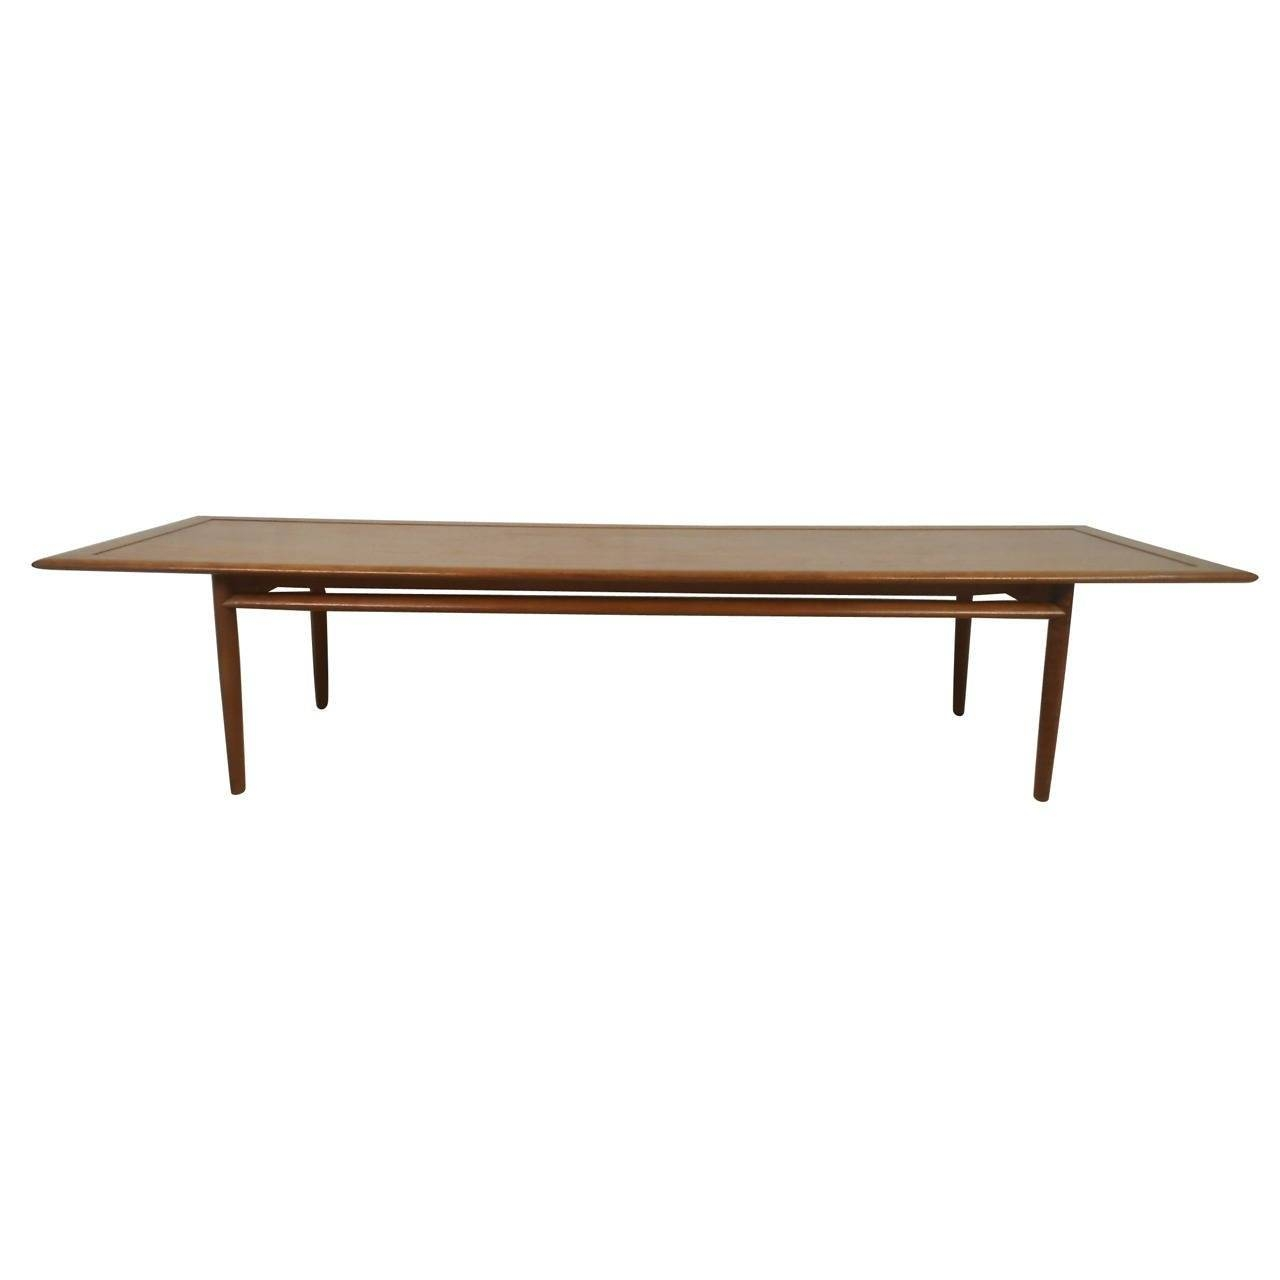 Long Coffee Table From Drexel Parallel Series For Sale At 1Stdibs Inside Long Coffee Tables (View 3 of 15)